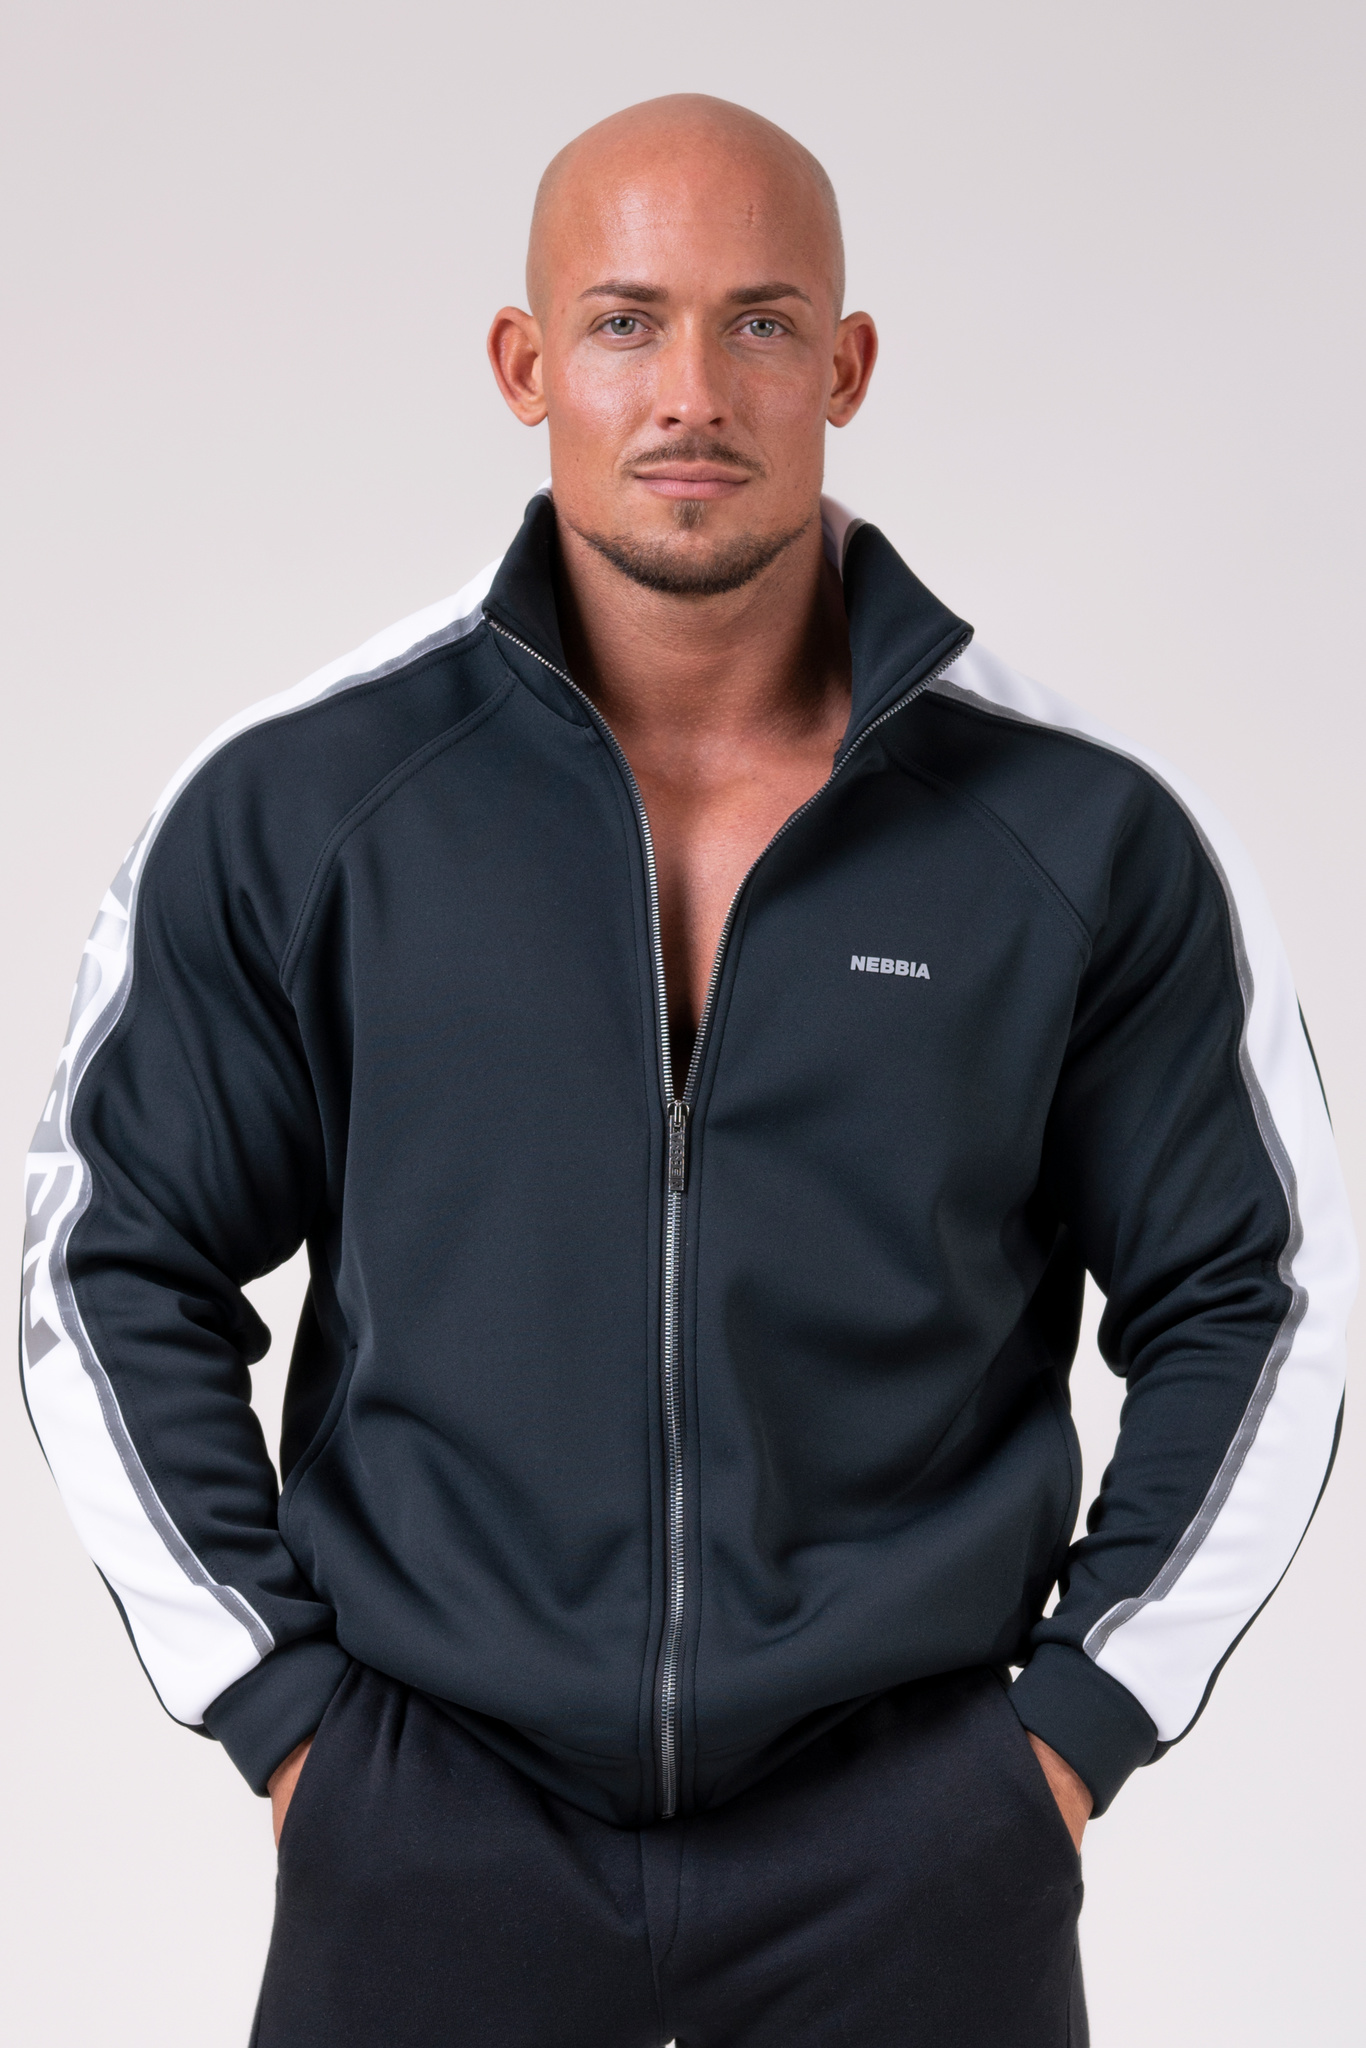 Кофта мужская Iconic Nebbia jacket of Champions 176 black